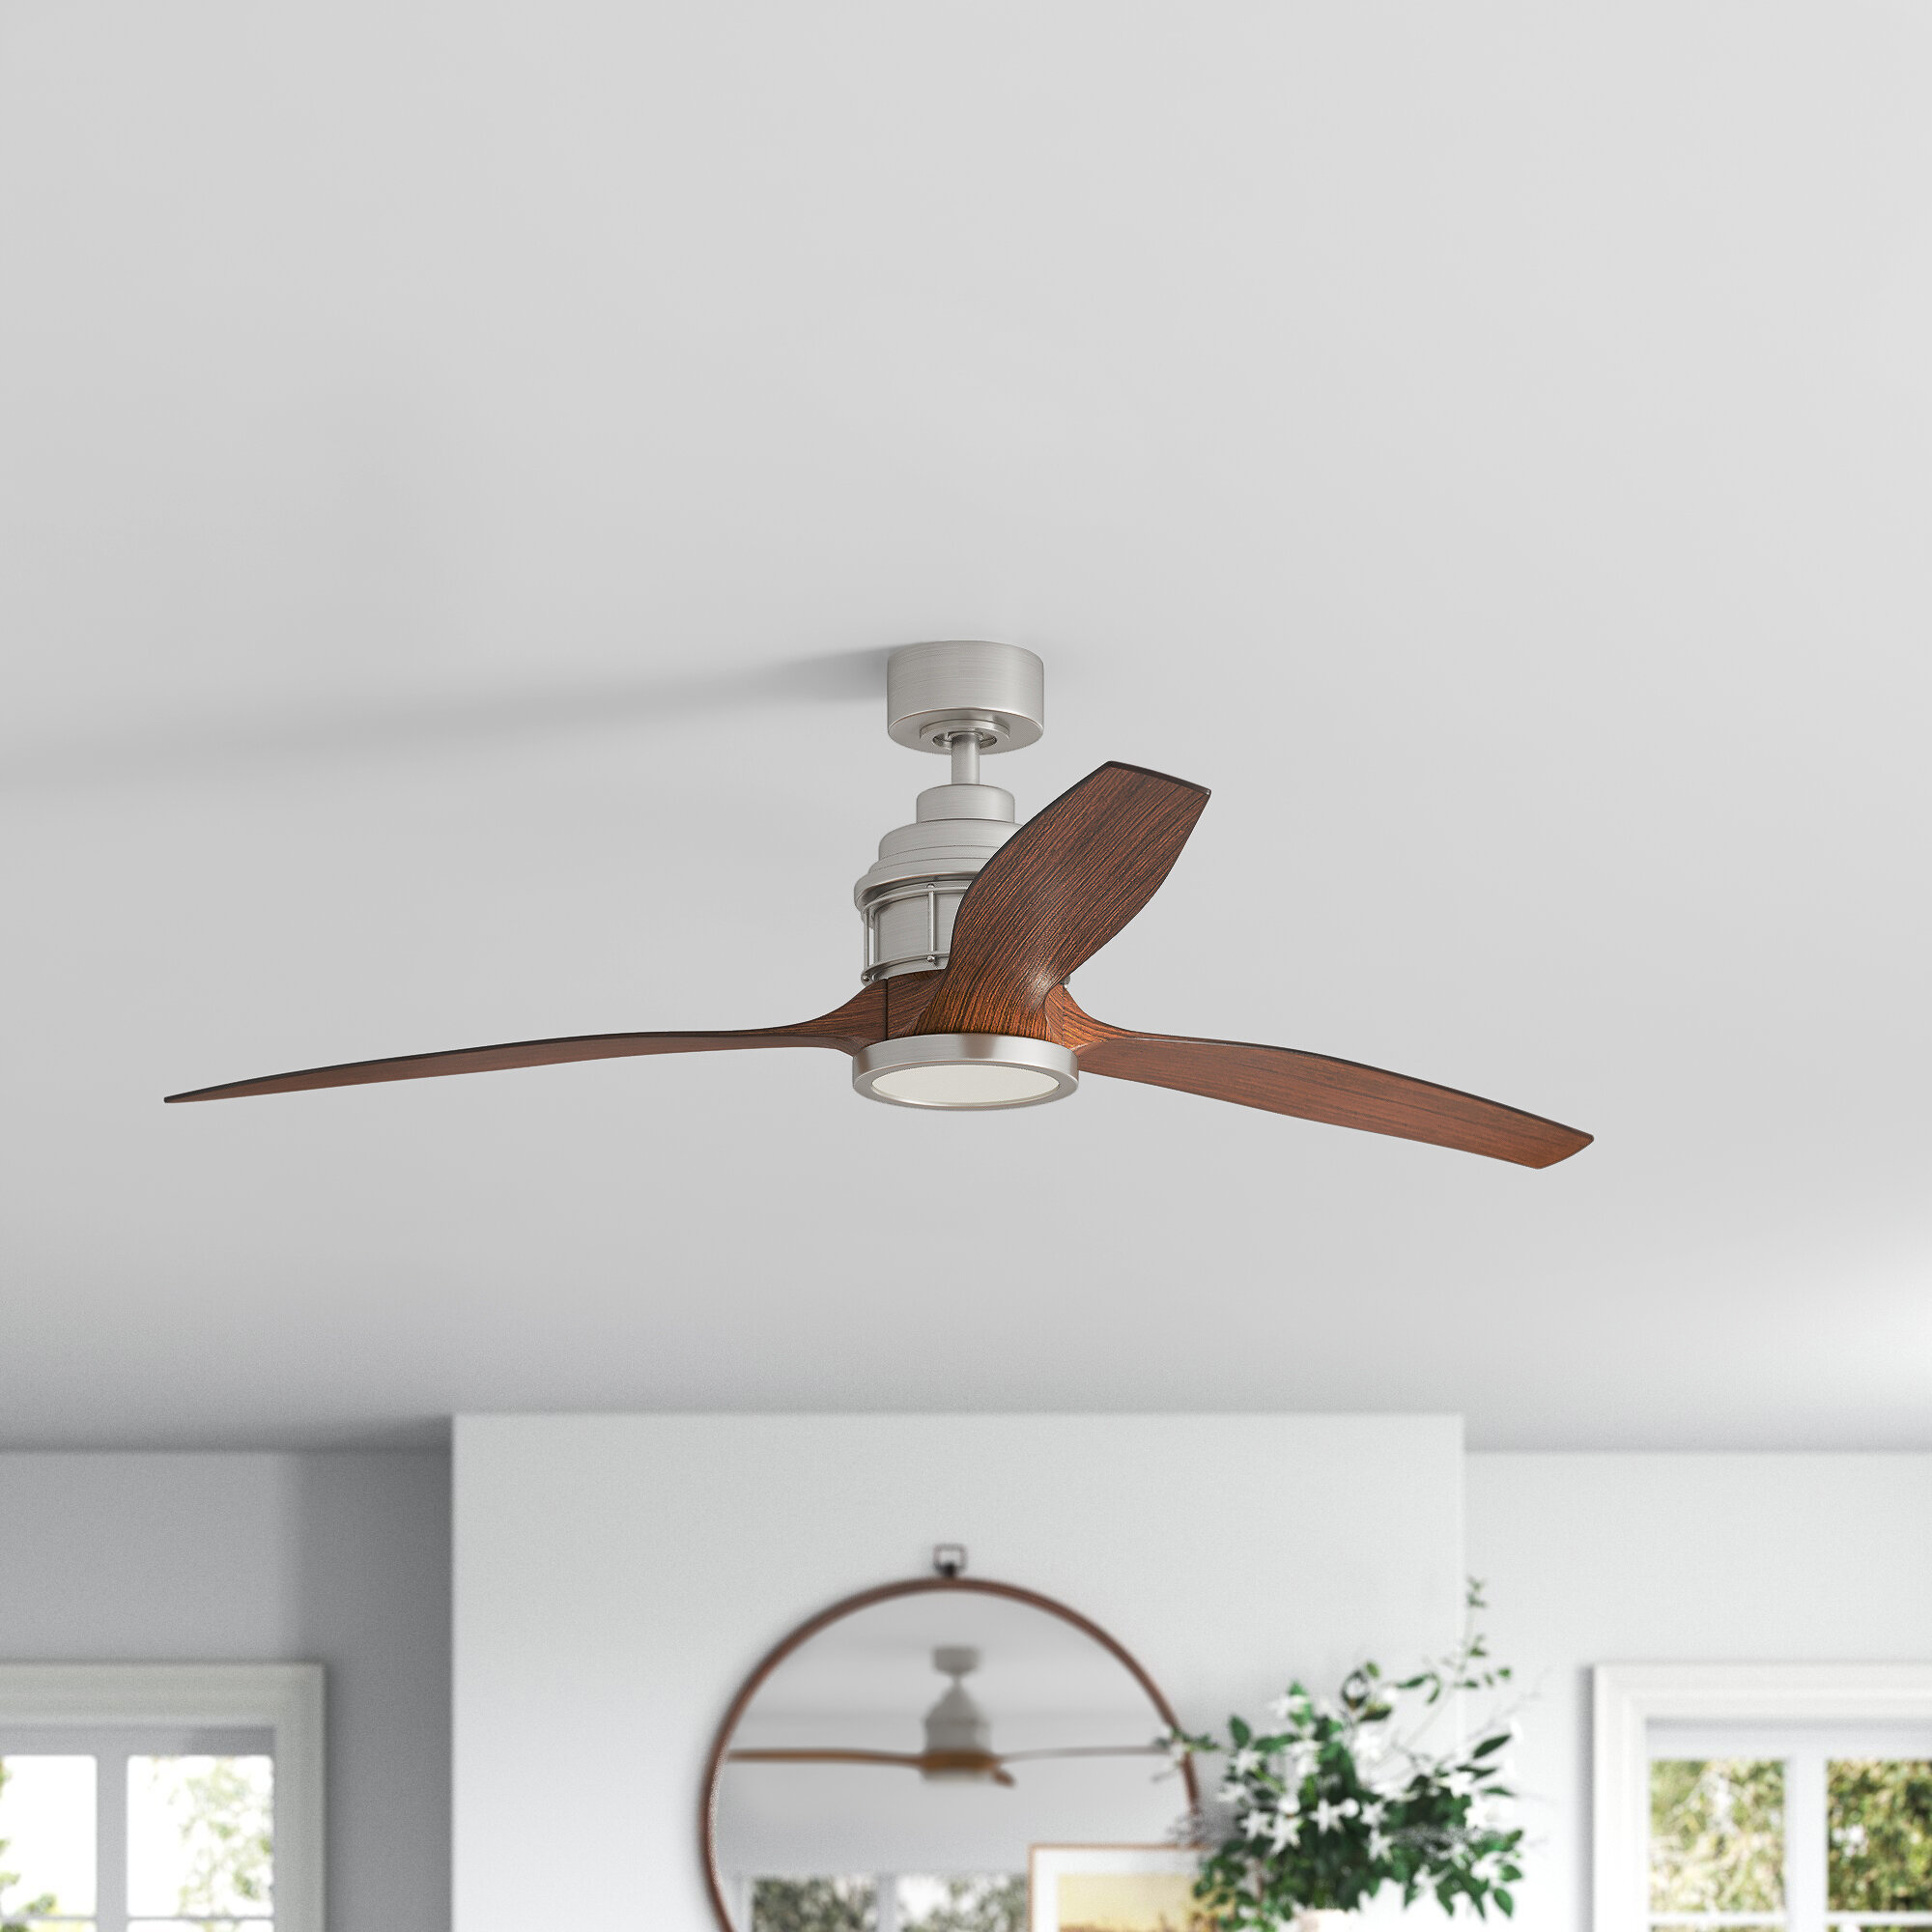 Joss Main 60 Harmoneyq 3 Blade Led Propeller Ceiling Fan With Remote Control And Light Kit Included Reviews Wayfair